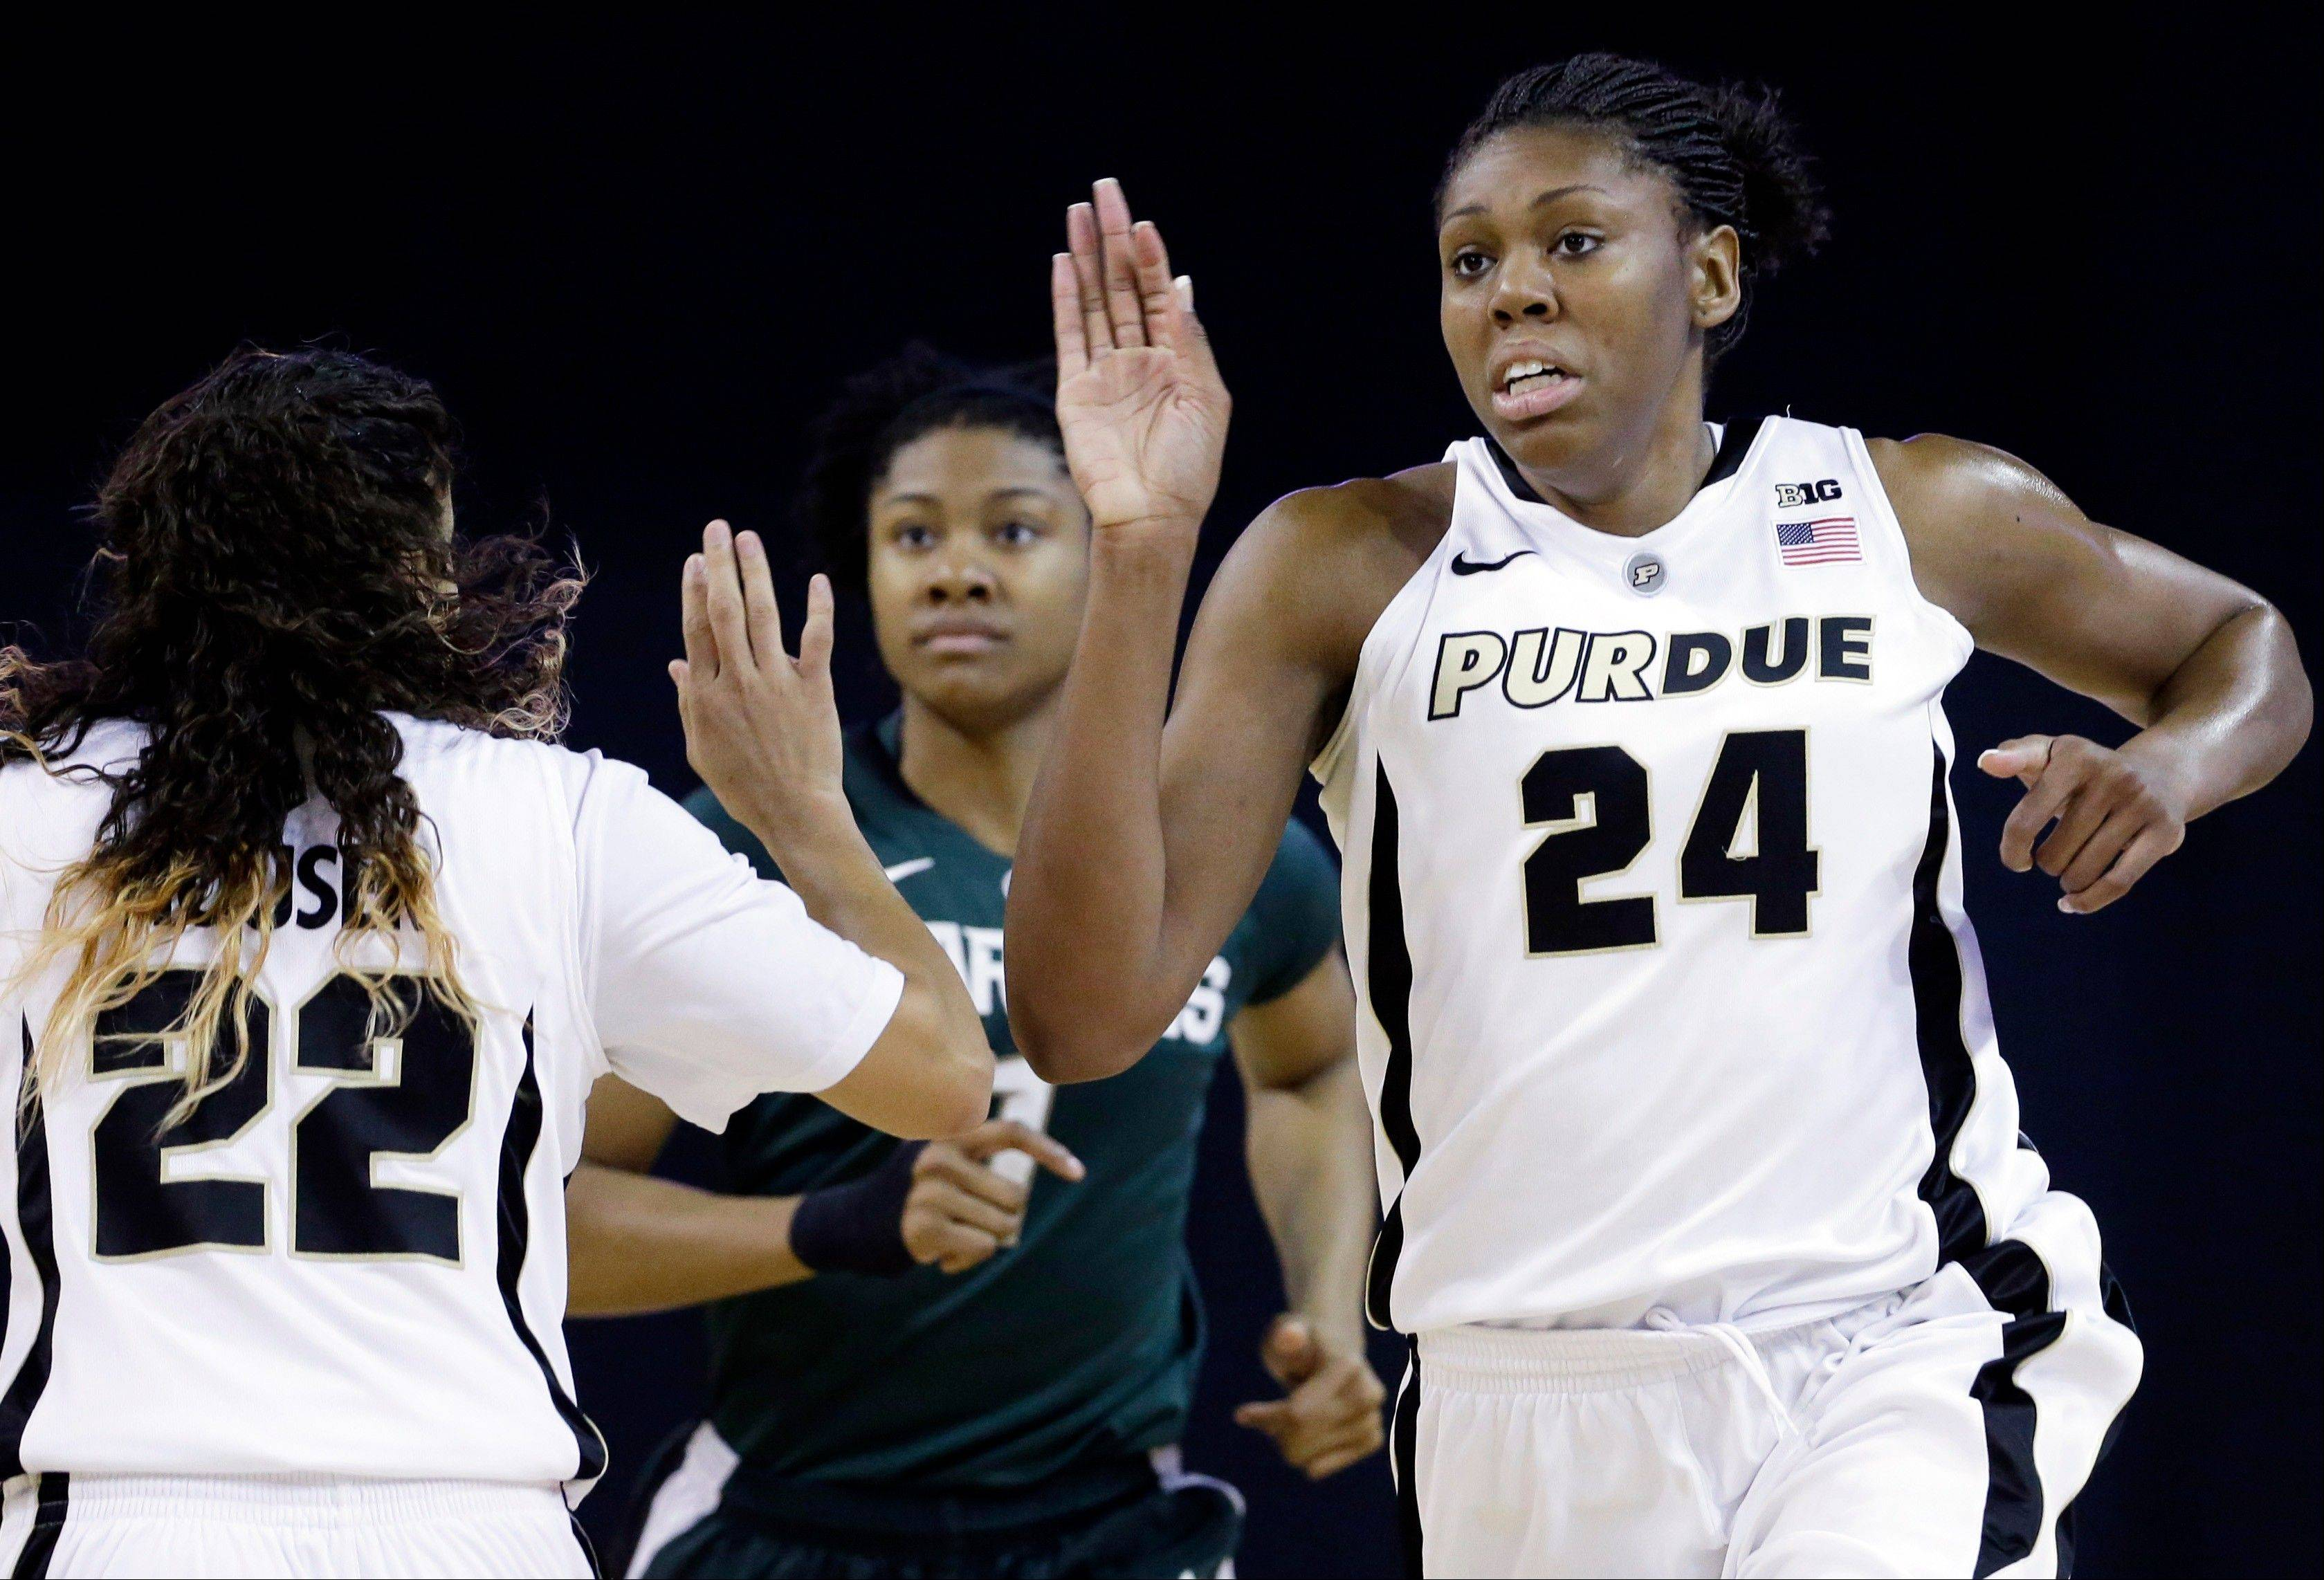 Purdue forward Drey Mingo, right, celebrates with guard KK Houser after scoring a basket in the Big Ten women's basketball title game at Sears Centre in Hoffman Estates.